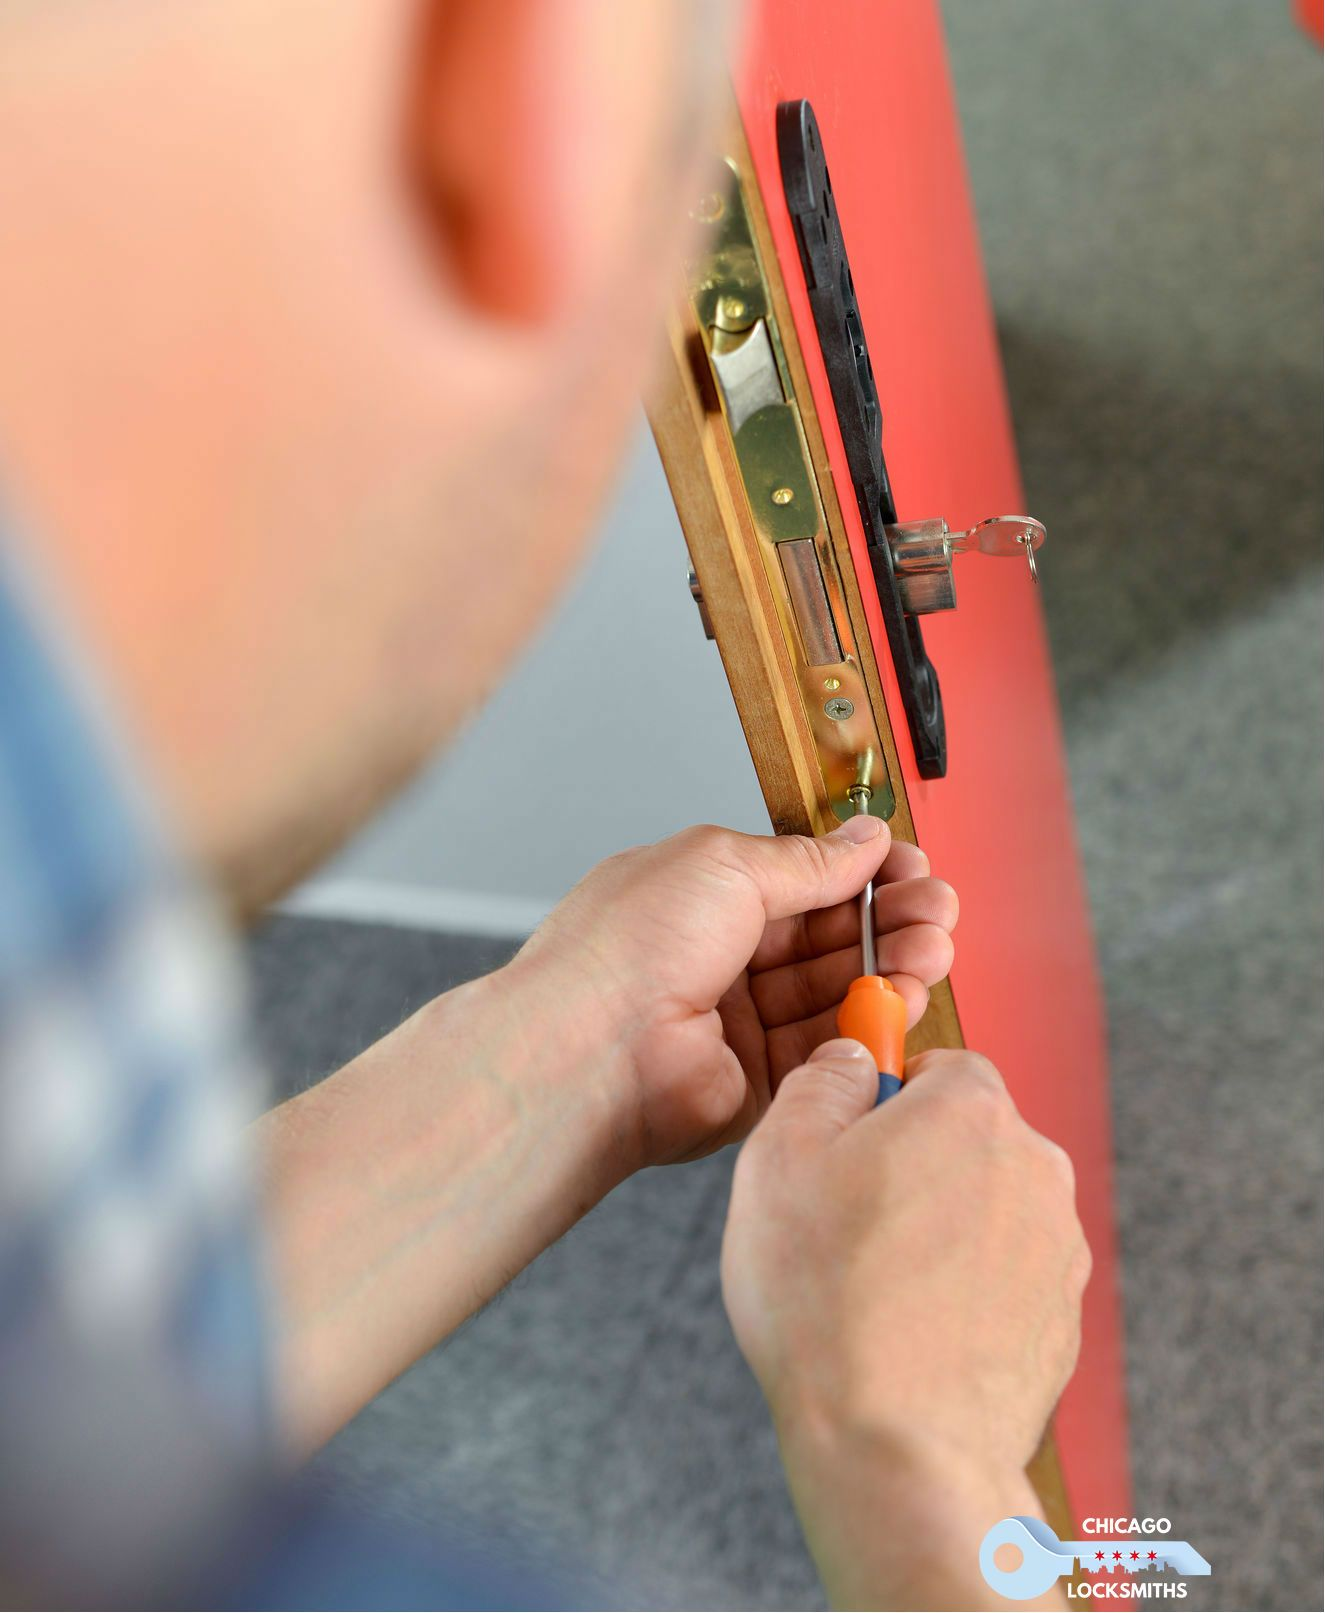 Locksmithing is an ancient field that has only grown more advanced and complex over the years. Anybody who practices it's true art needs to be both trustworthy and skilled. Here's some fun facts about locksmiths that you might not know. #Chicago #Locksmith #24HourLocksmith #LocksmithinChicago #Security #Locksmiths #Northbrook #Emergency #Residential #Commercial #Automotive #ChicagoLocksmiths #BestLocksmithofChicago